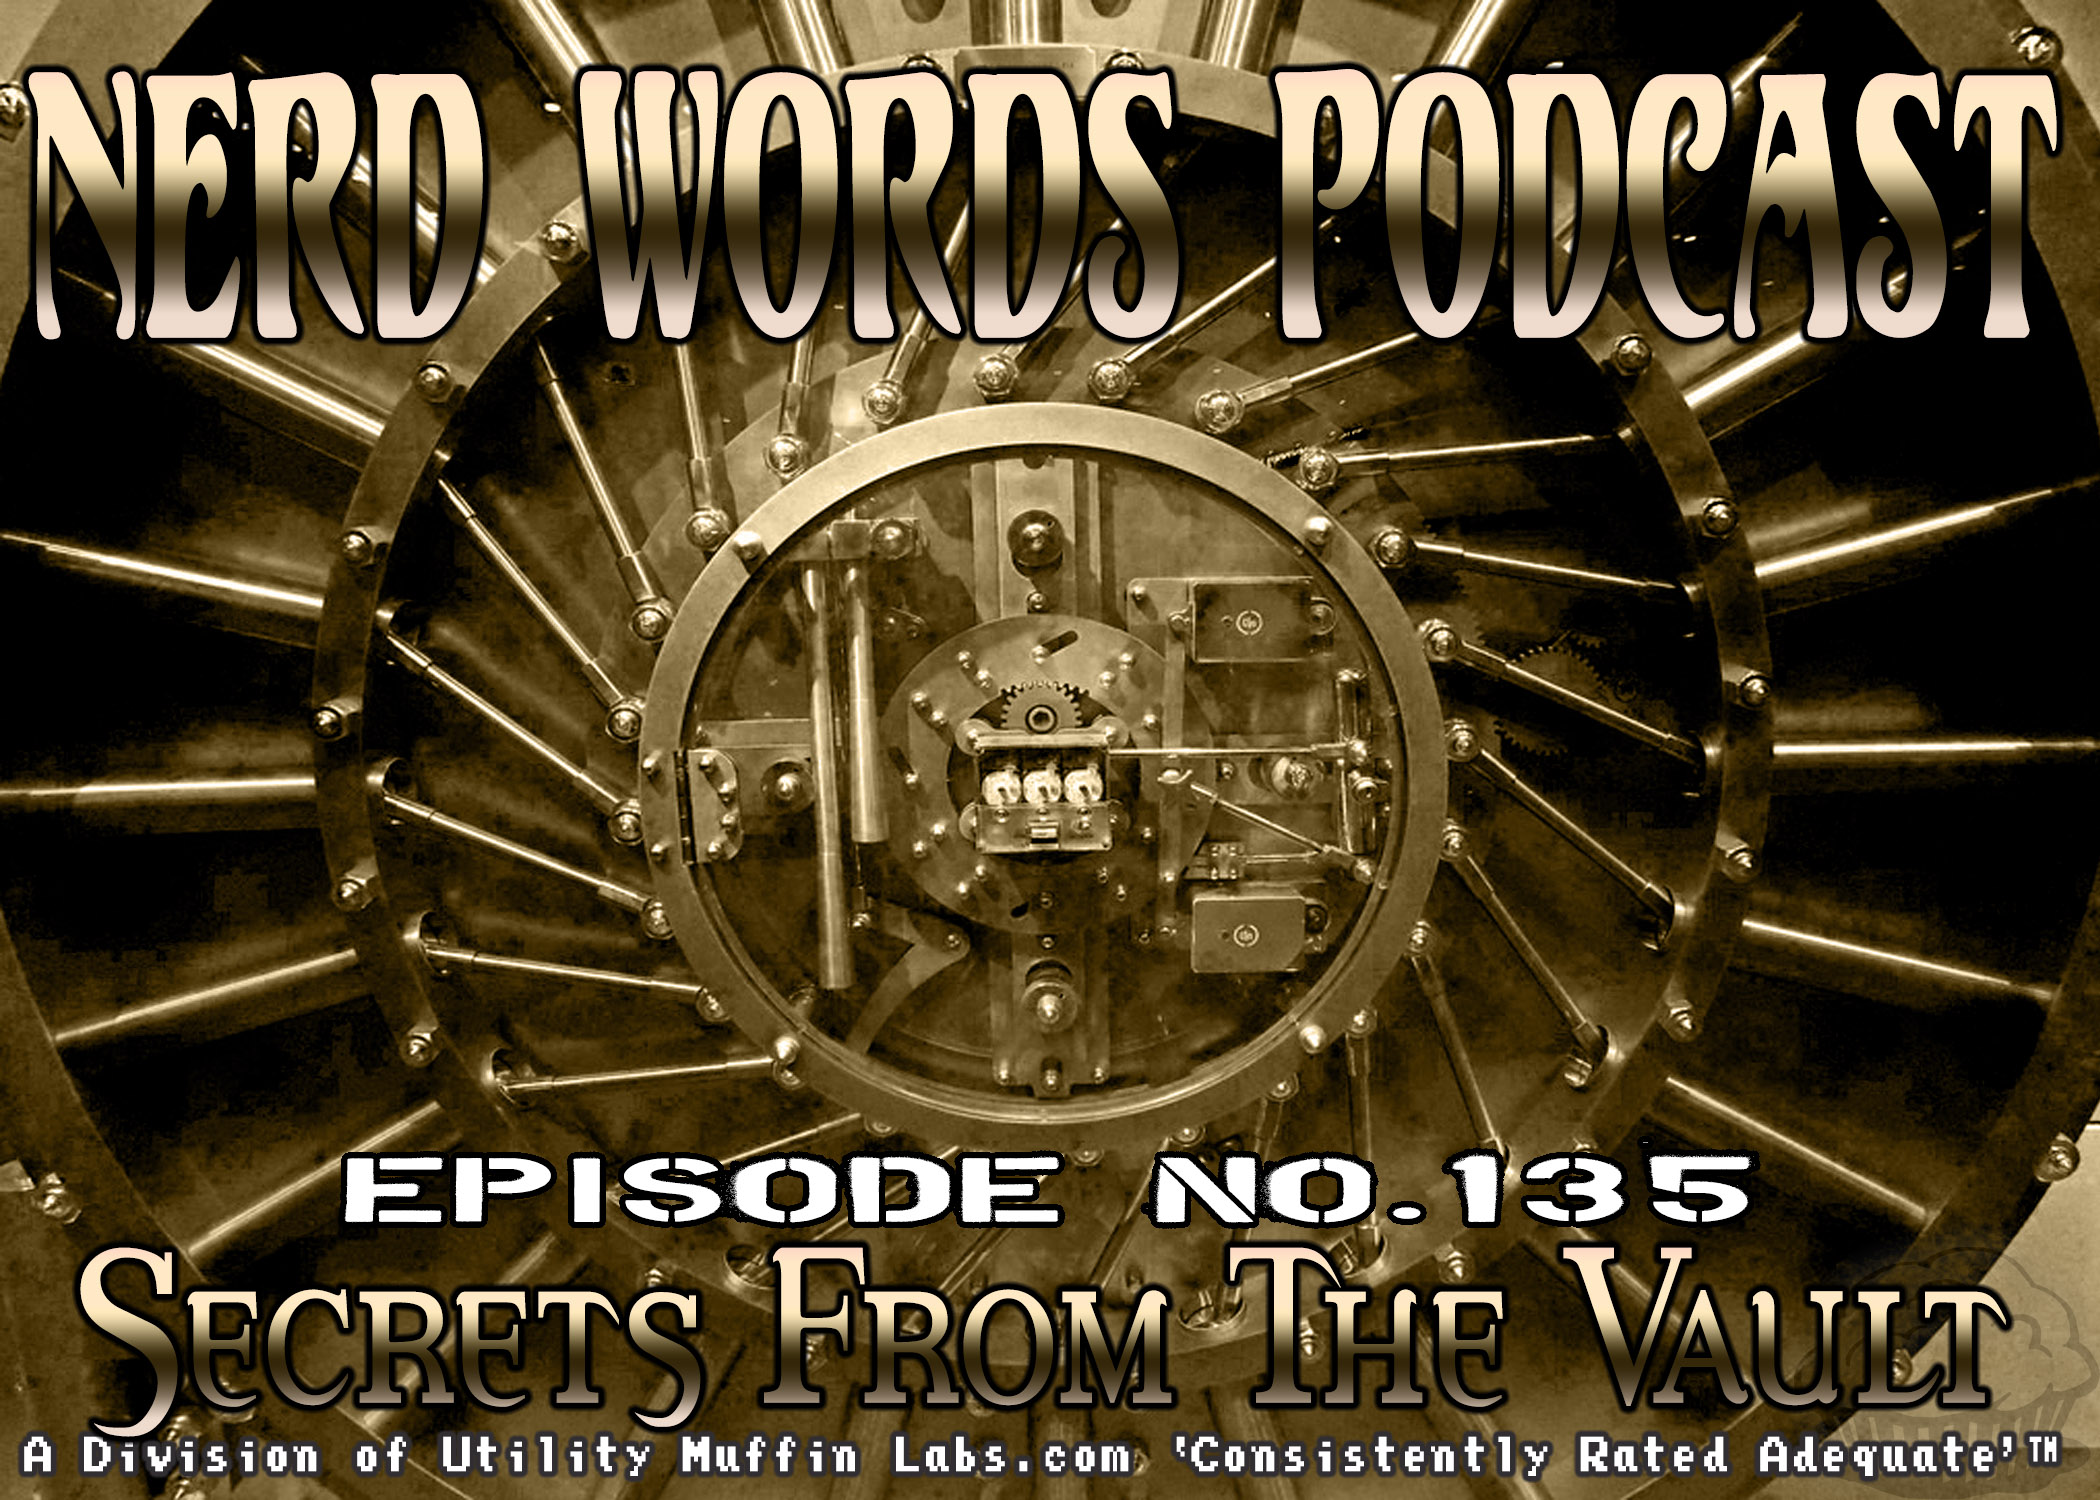 Nerd Words Podcast 135.jpg